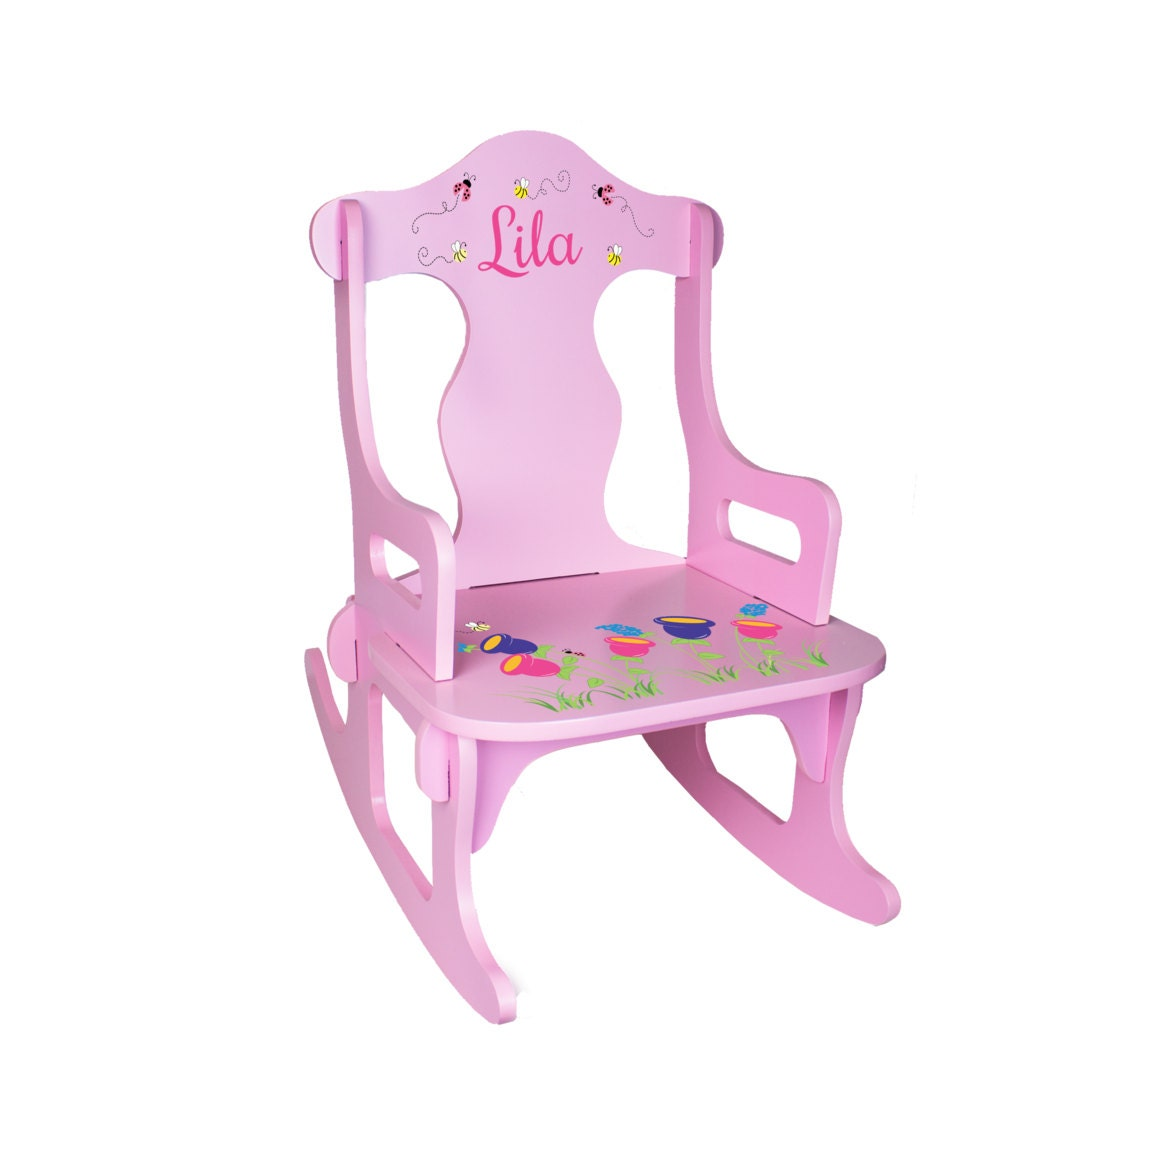 Personalized Kids Rocking Chair Custom Pink by WizkickGifts